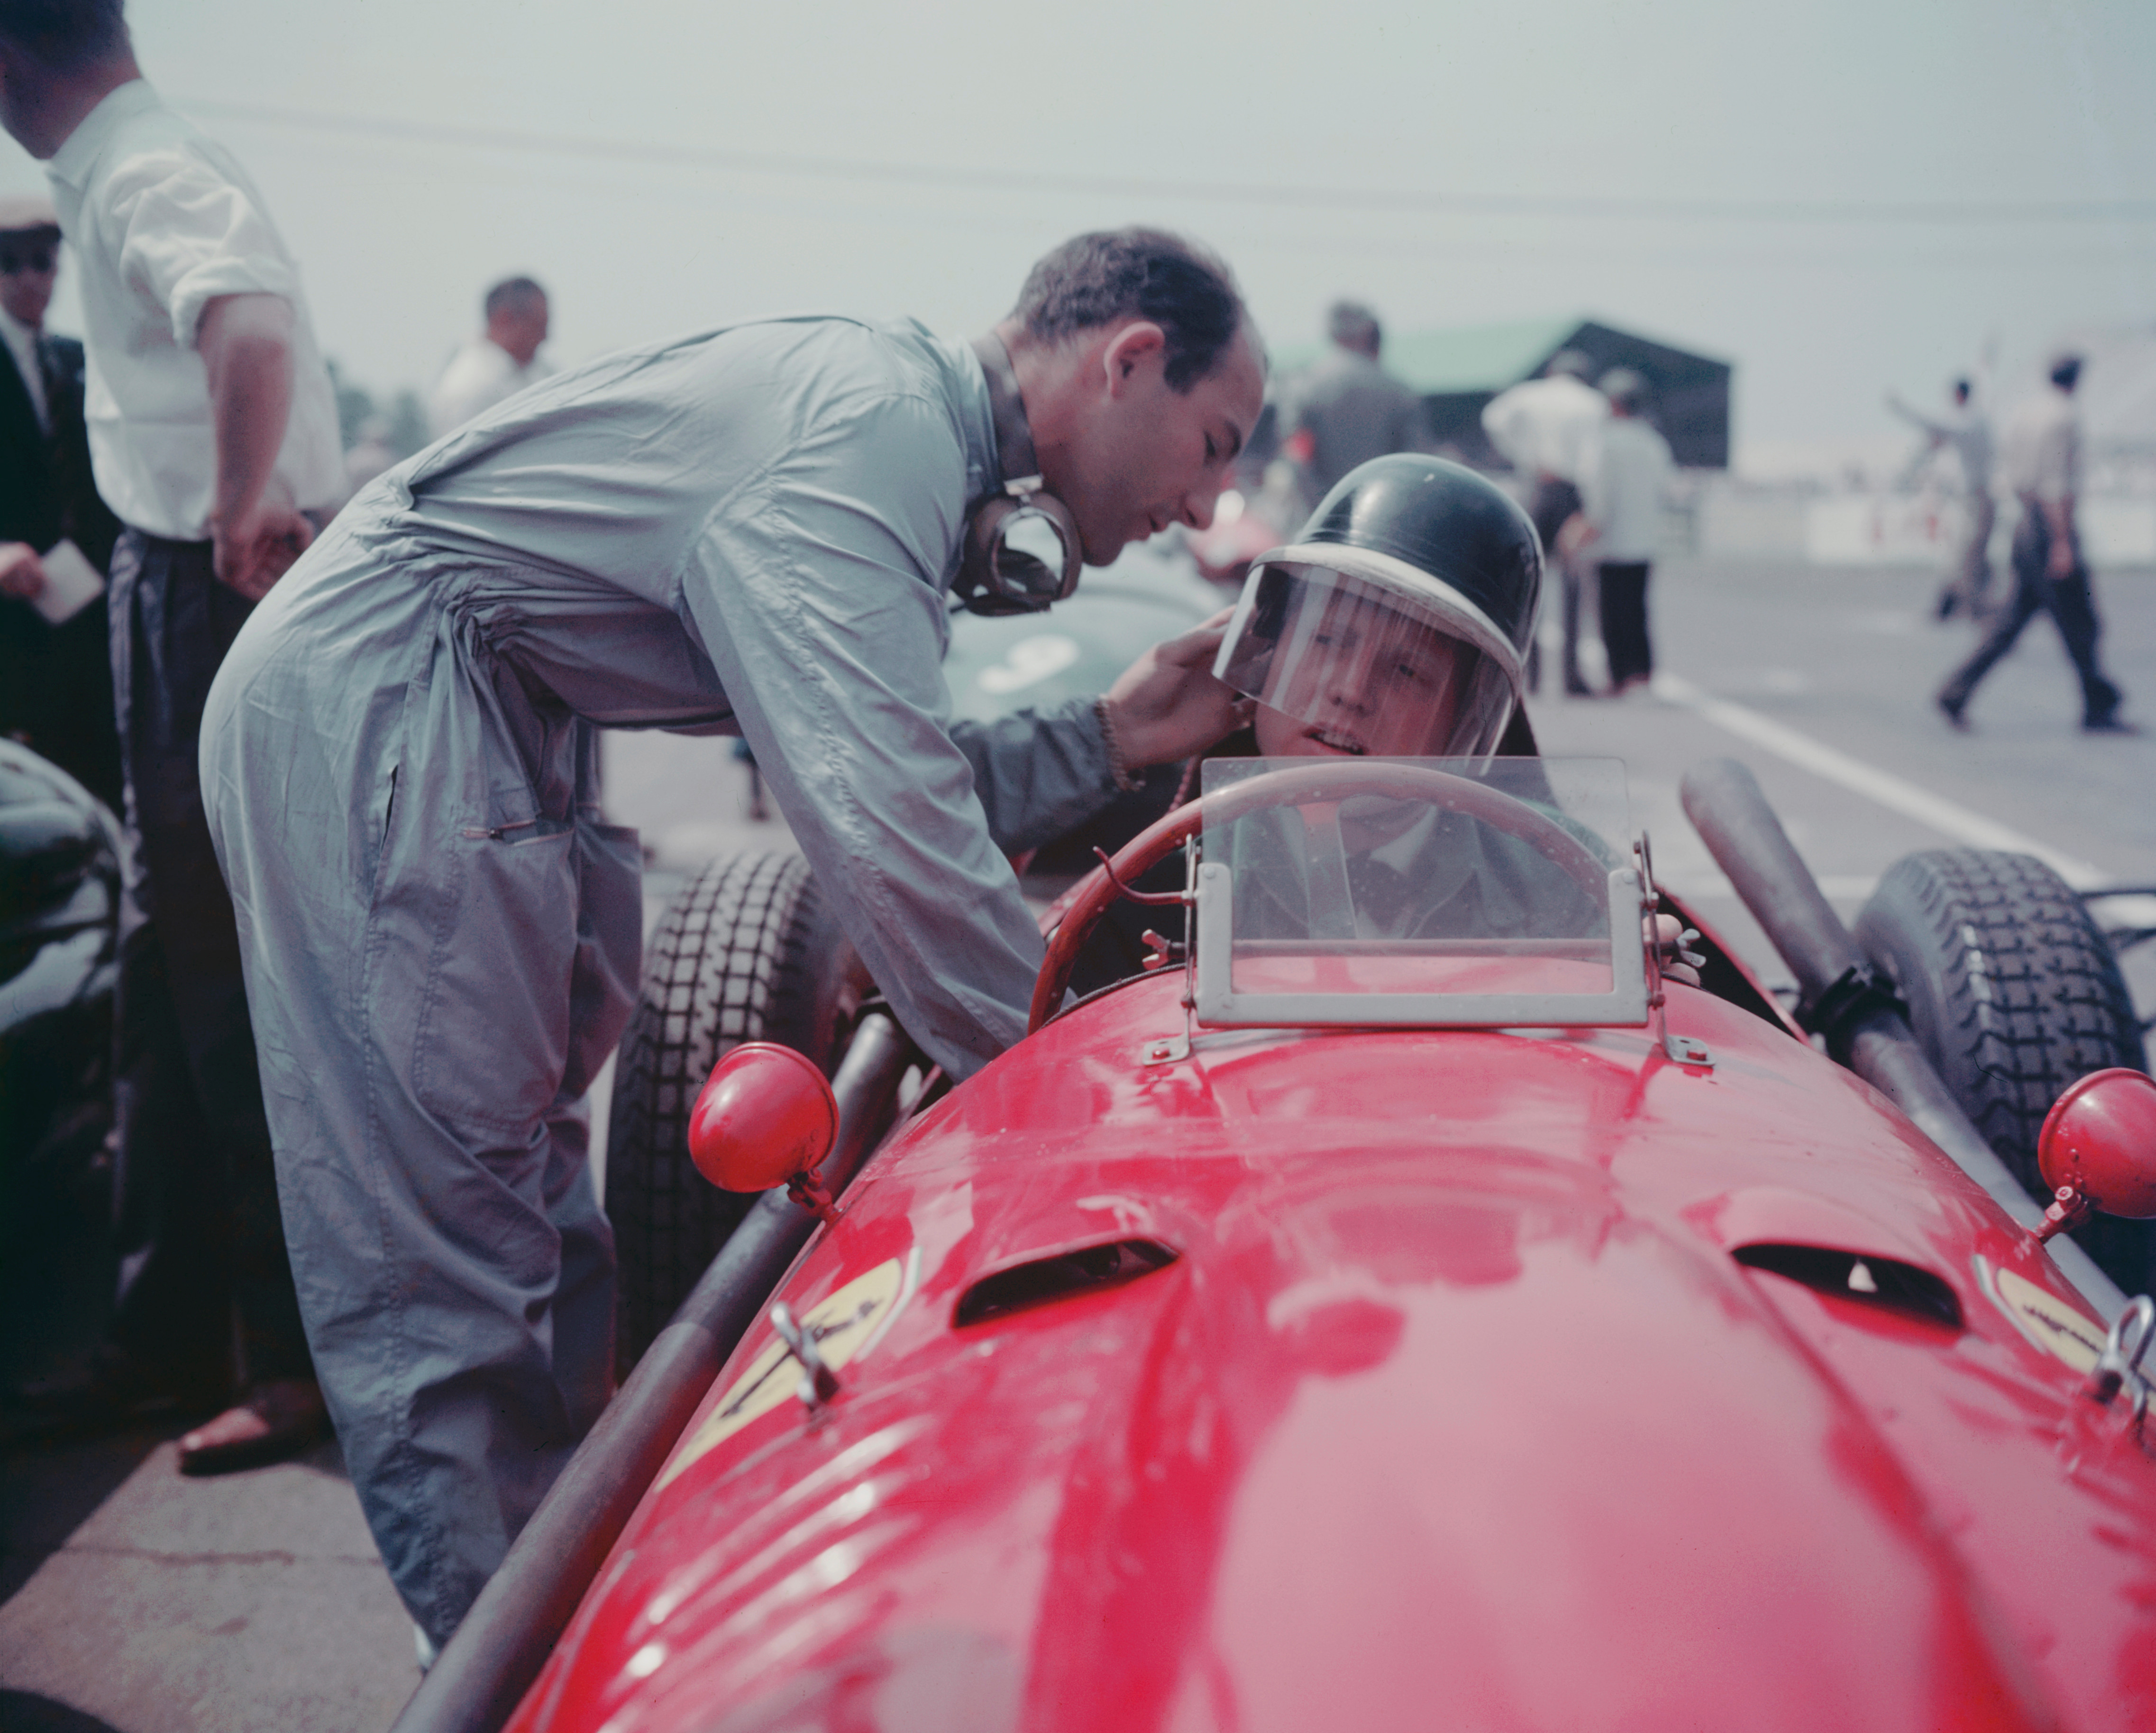 British racing icon Stirling Moss (left) adjusts the helmet of Ferrari driver Mike Hawthorn before a race in 1958